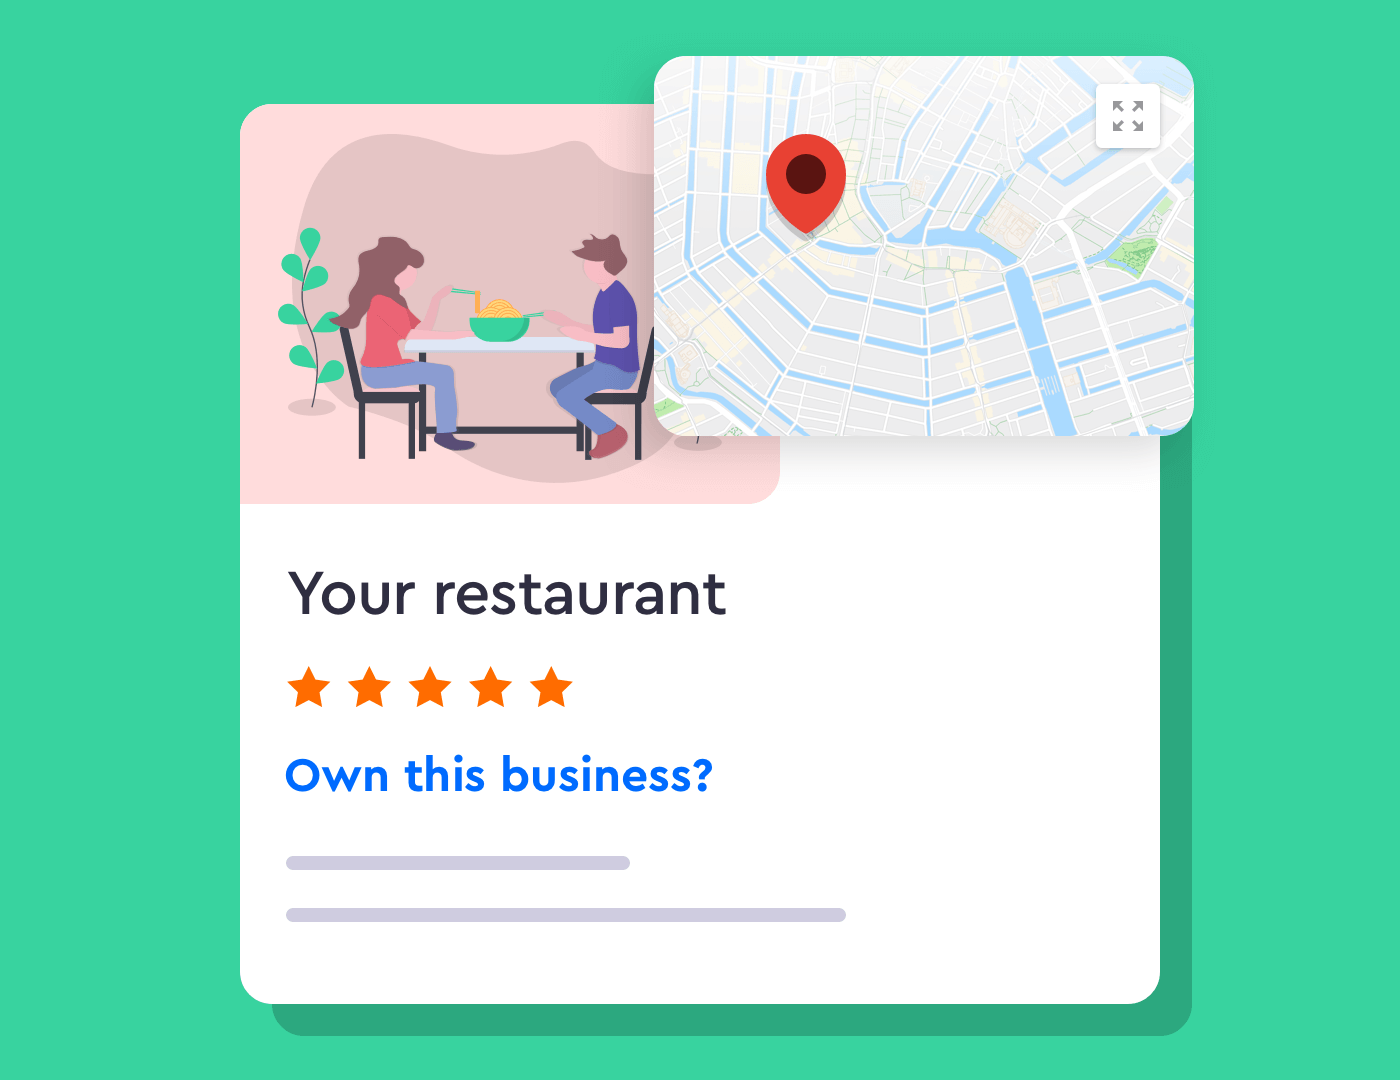 How to claim your restaurant on Google with Google My Business